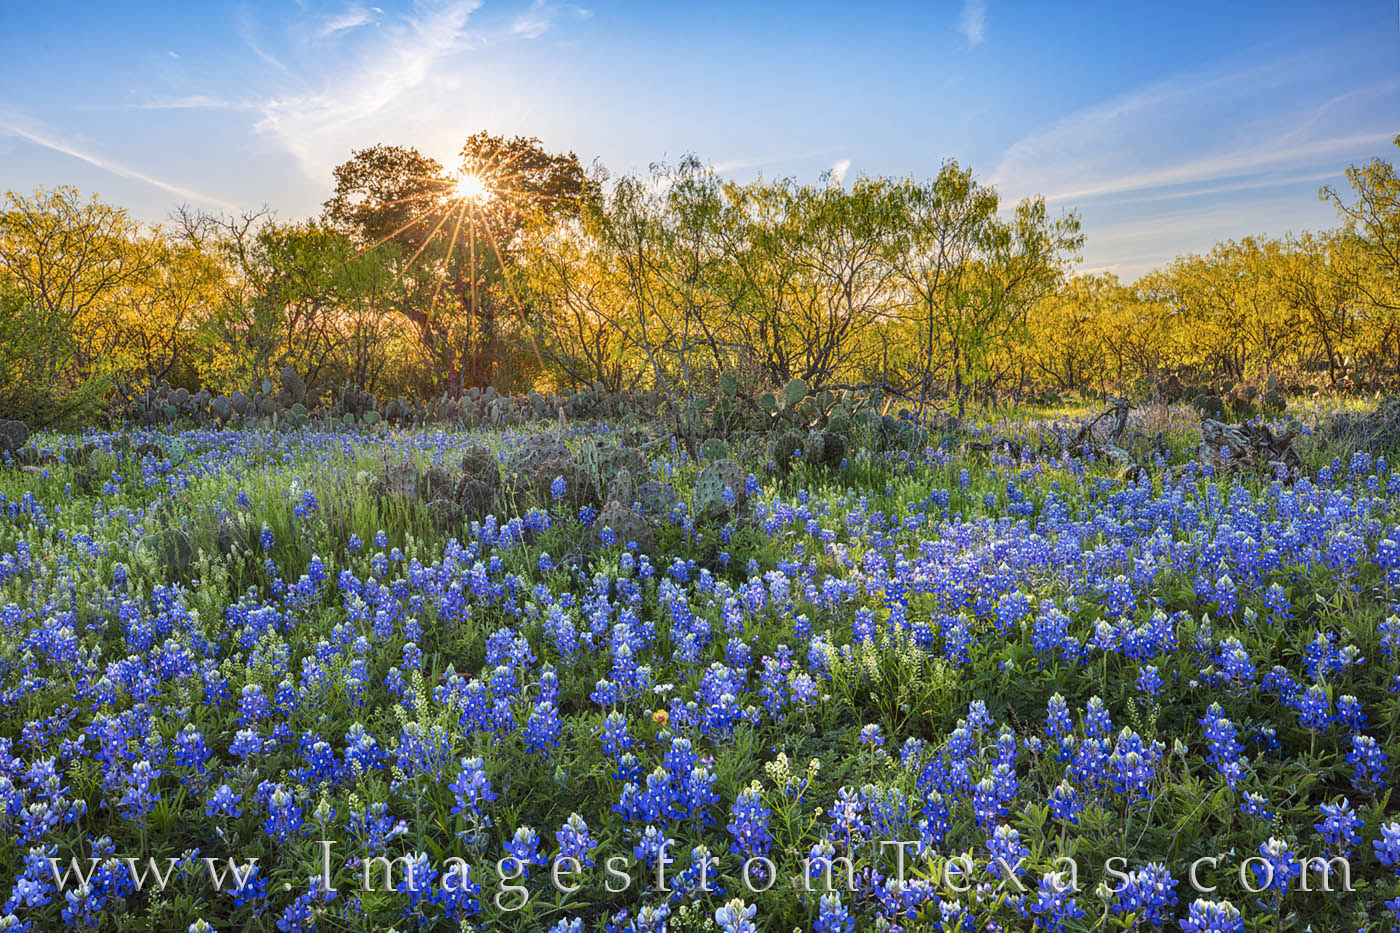 bluebonnets, sunburst, texas hill country, mason, evening, bluebonnet prints, country roads, county roads, photo